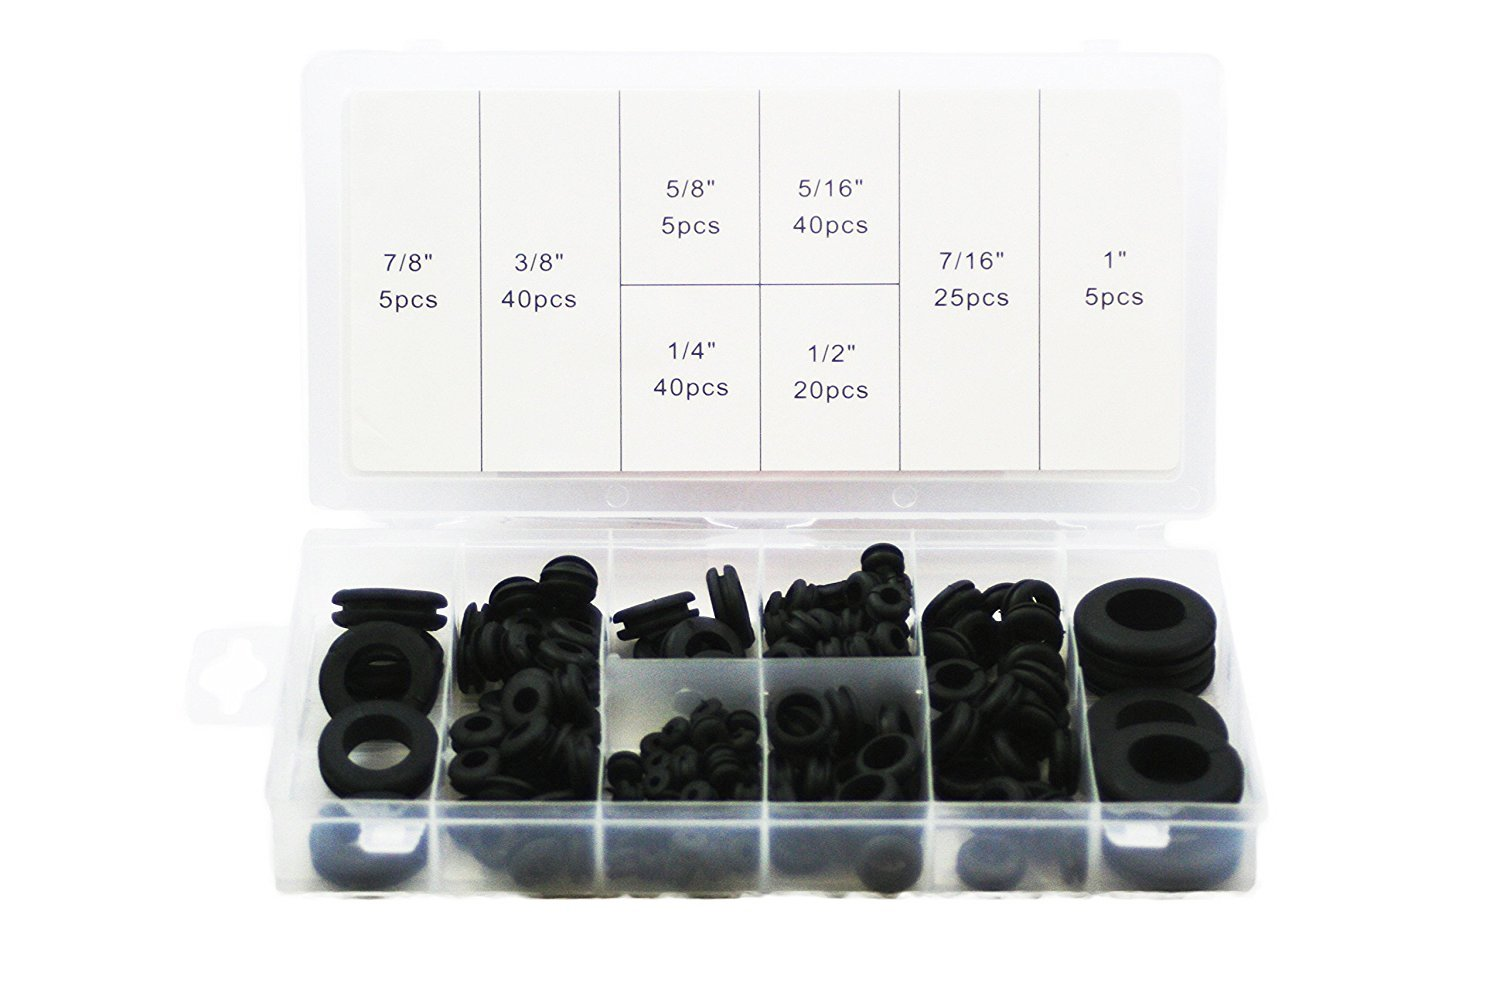 "ABN 180 Piece SAE Rubber Grommet Assortment 7/8"", 5/8"", 5/16"", 7/16"", 3/8"", ¼"", ½"", and 1 Inch Sizes"